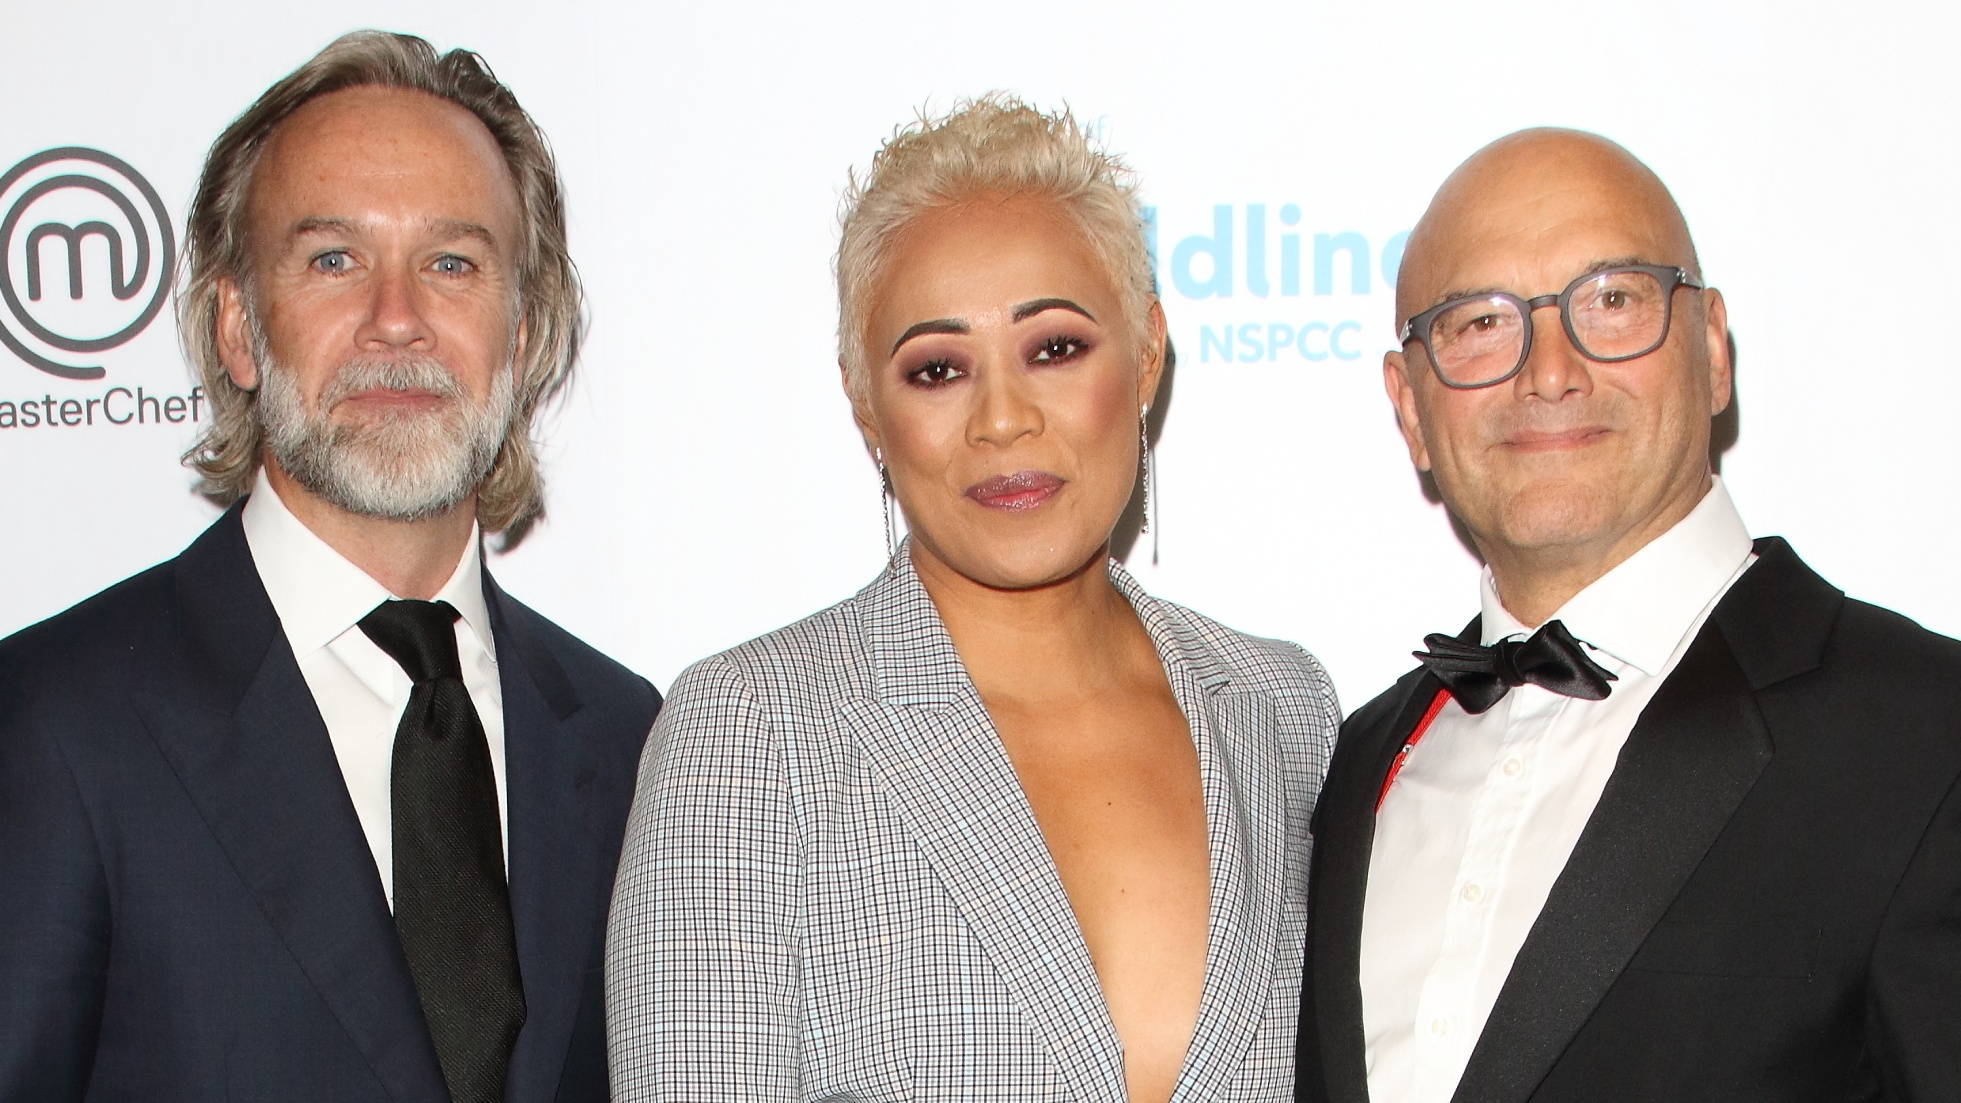 Marcus Wareing, Monica Galetti and Gregg Wallace attend The Childline Ball 2019 partnered with MasterChef for this year's theme at Old Billingsgate in London. (Keith Mayhew / SOPA Images/Sipa USA)